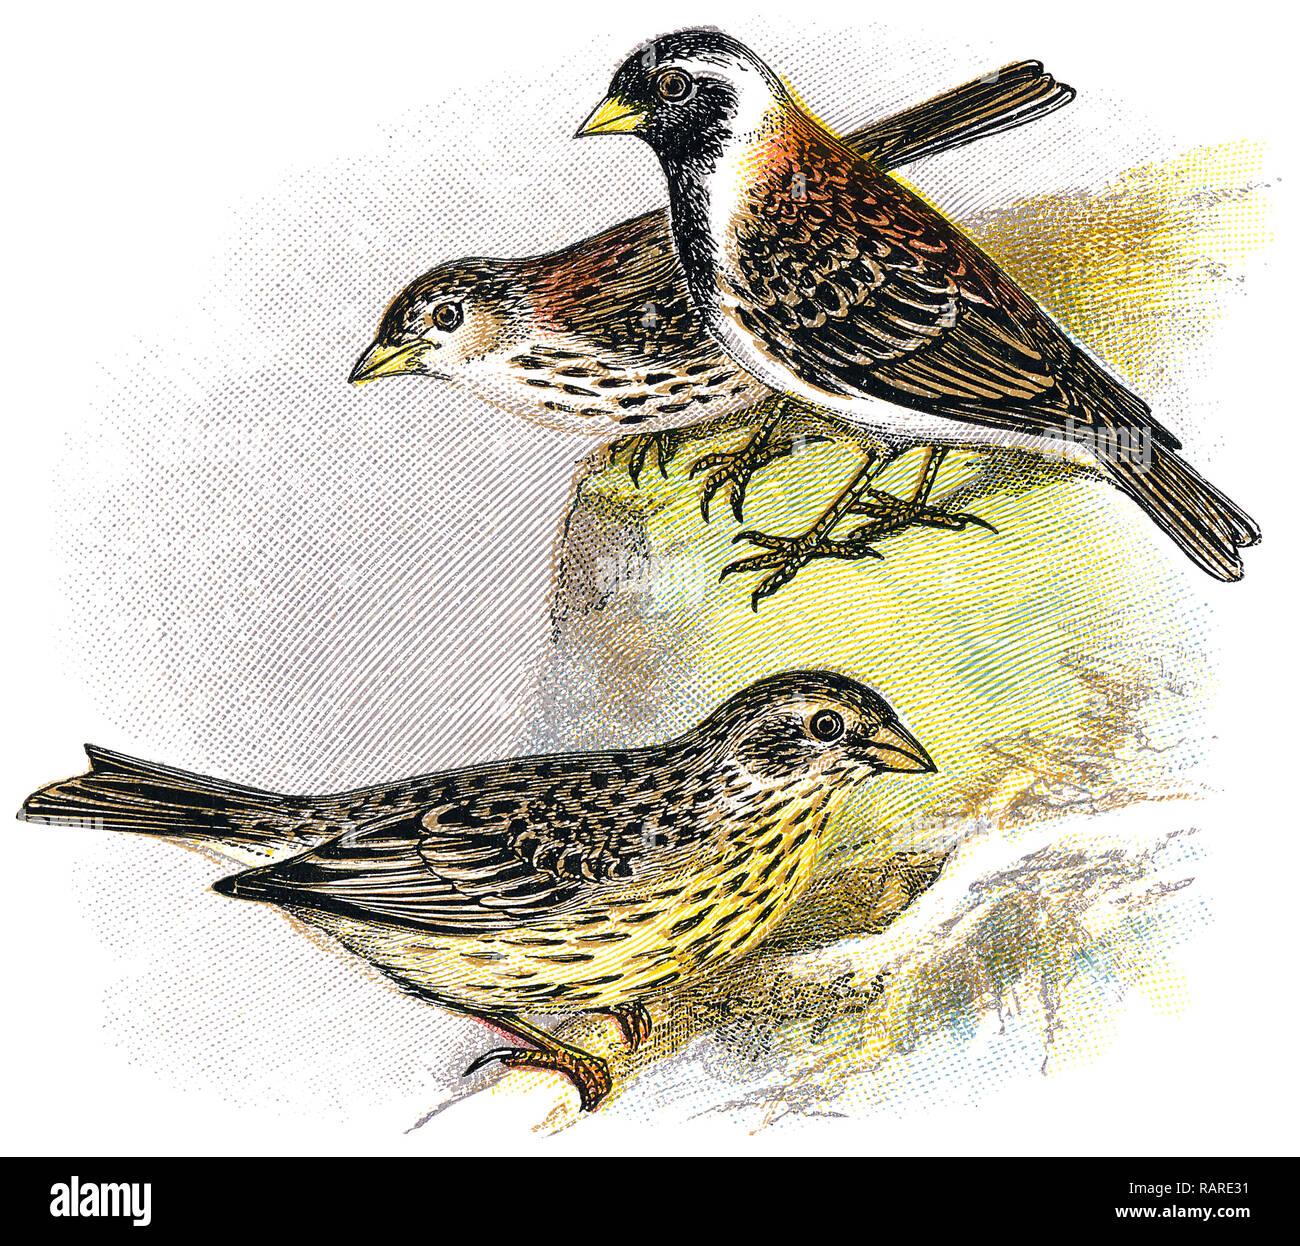 1898 colour engraving of a corn bunting (Emberiza calandra) at the bottom, and a Lapland bunting or Lapland longspur (Calcarius lapponicus) at the top. - Stock Image